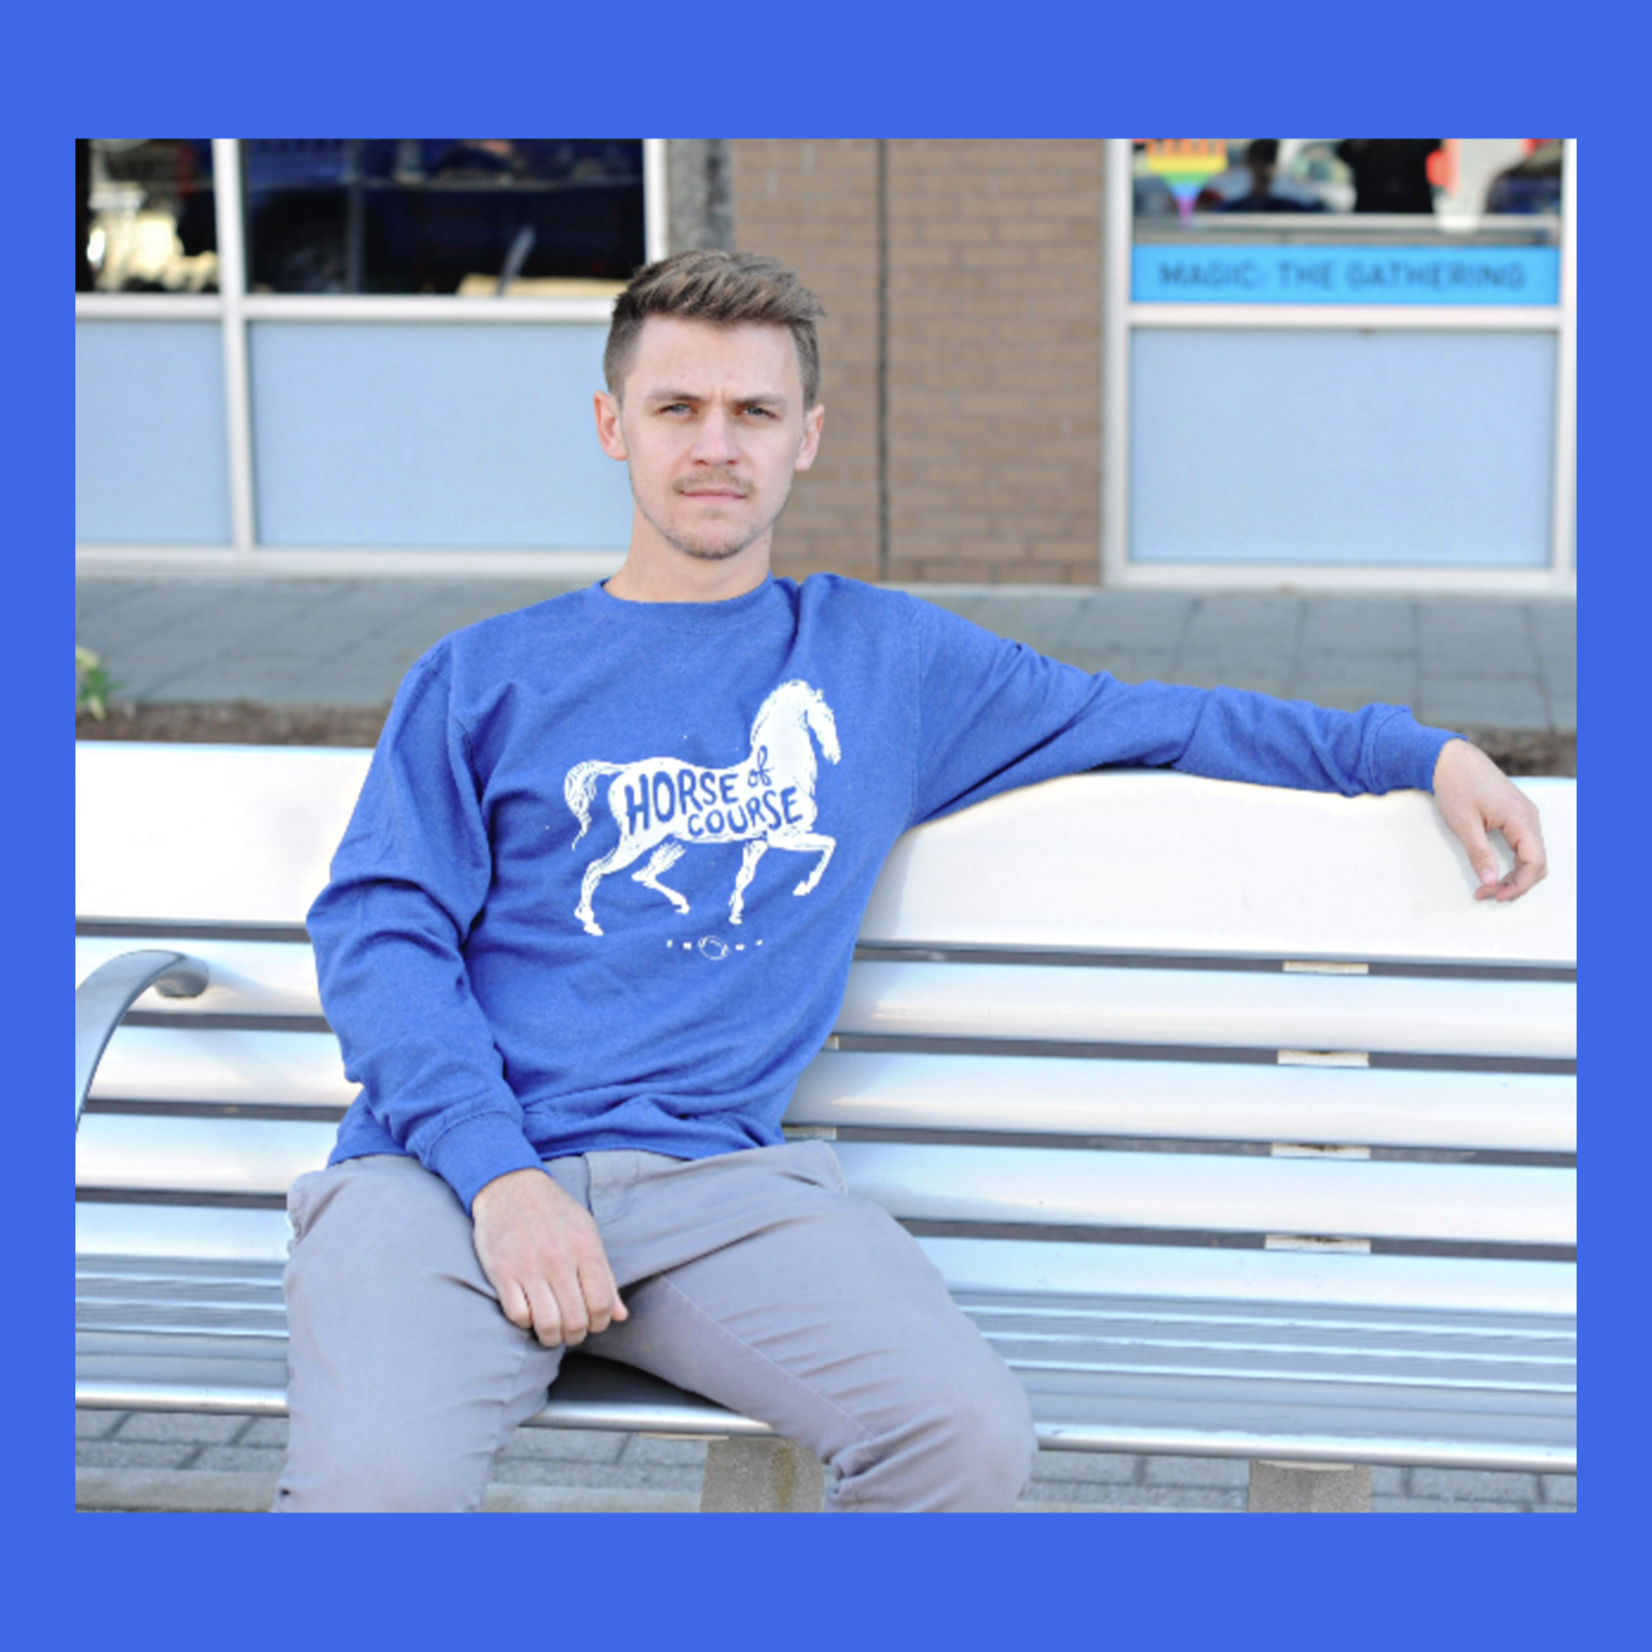 United State of Indiana Horse, Of Course Colt Sweatshirt